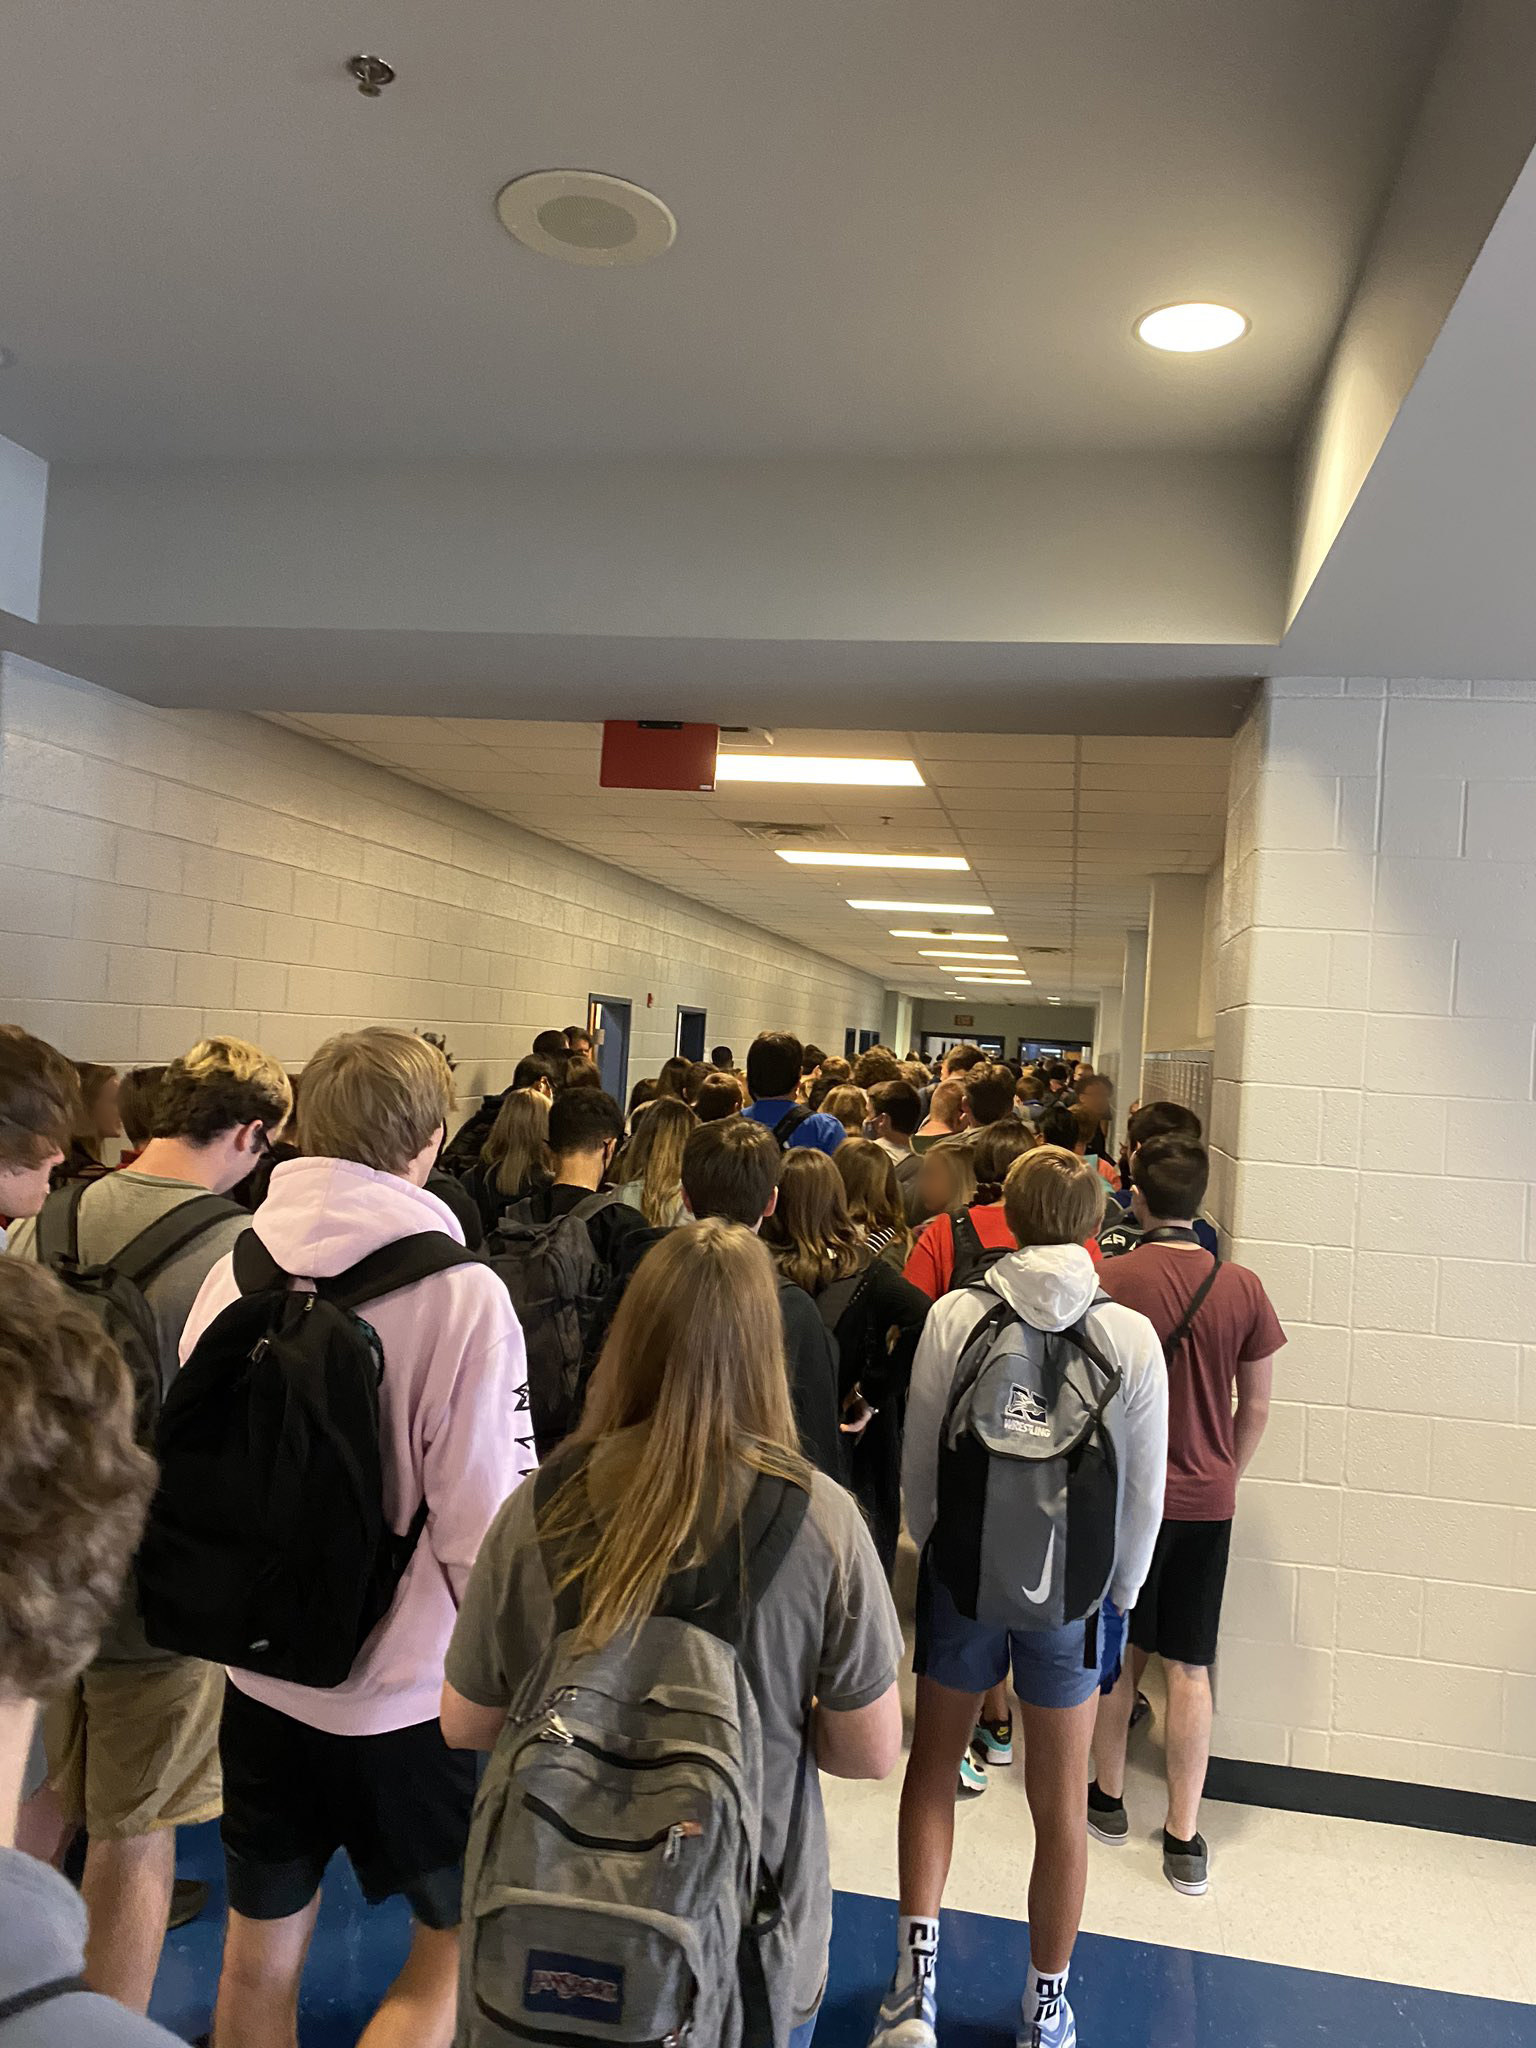 Students are packed into a school hallway